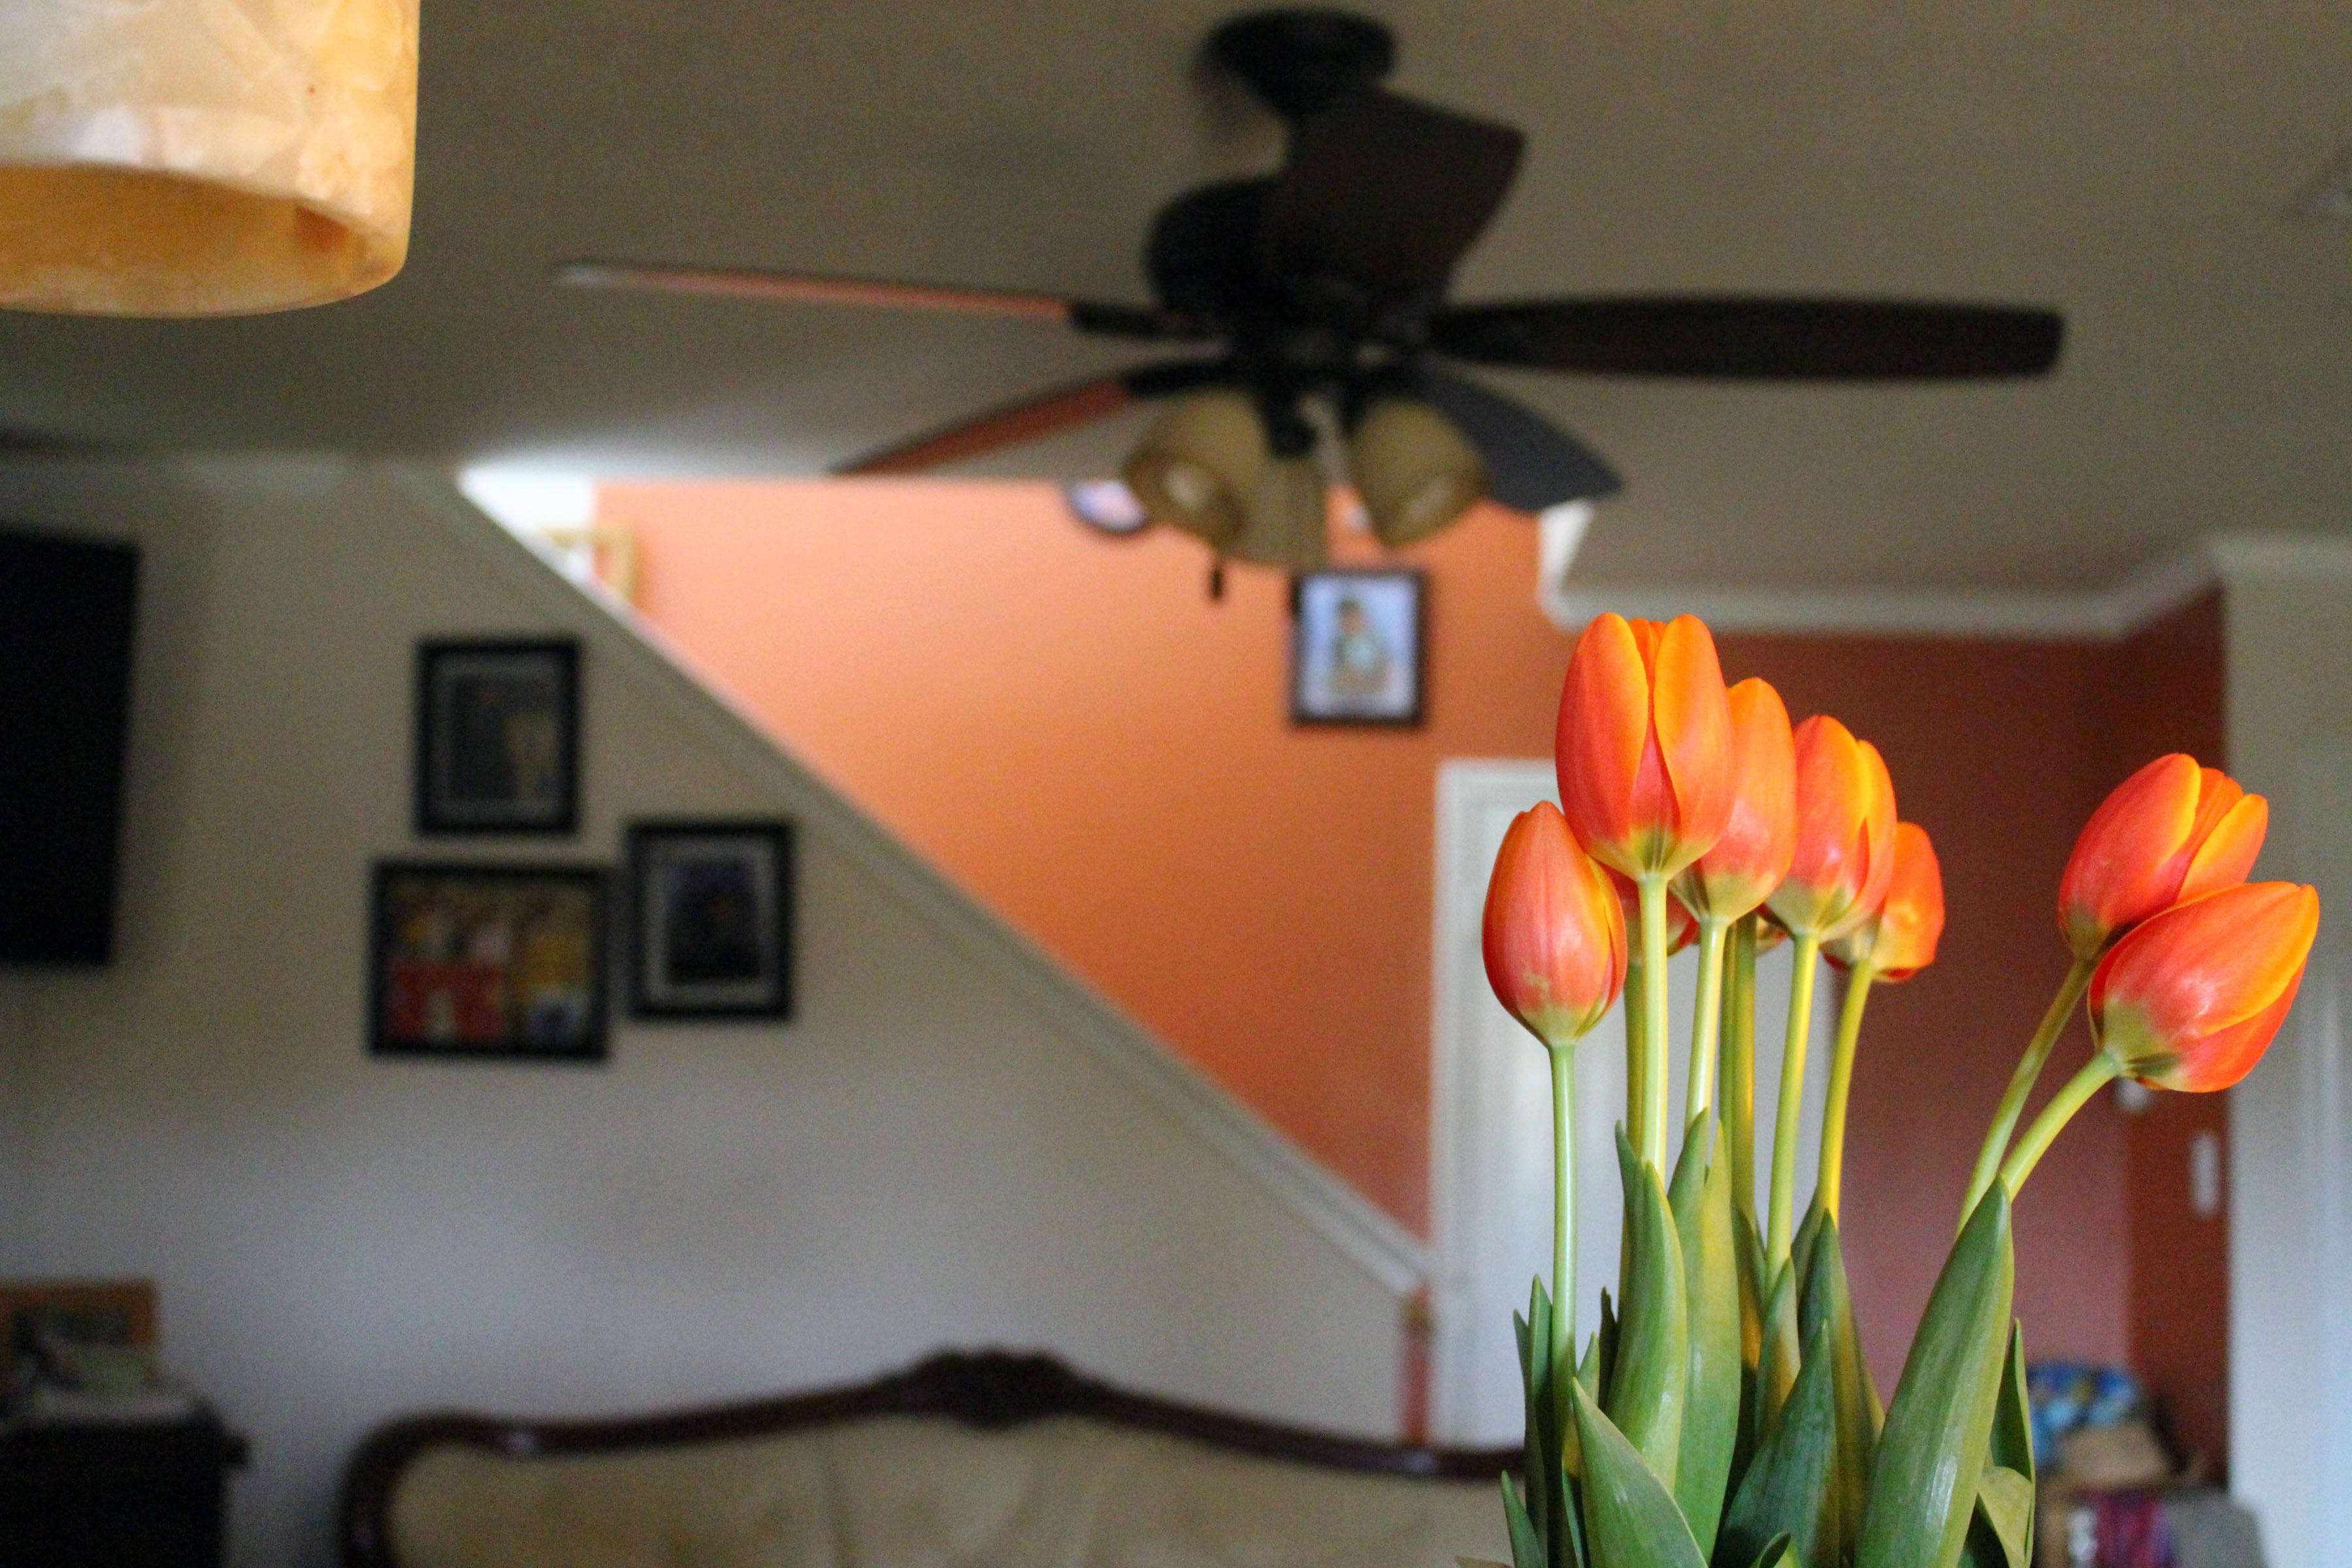 blooms, blossoms, ceiling fan